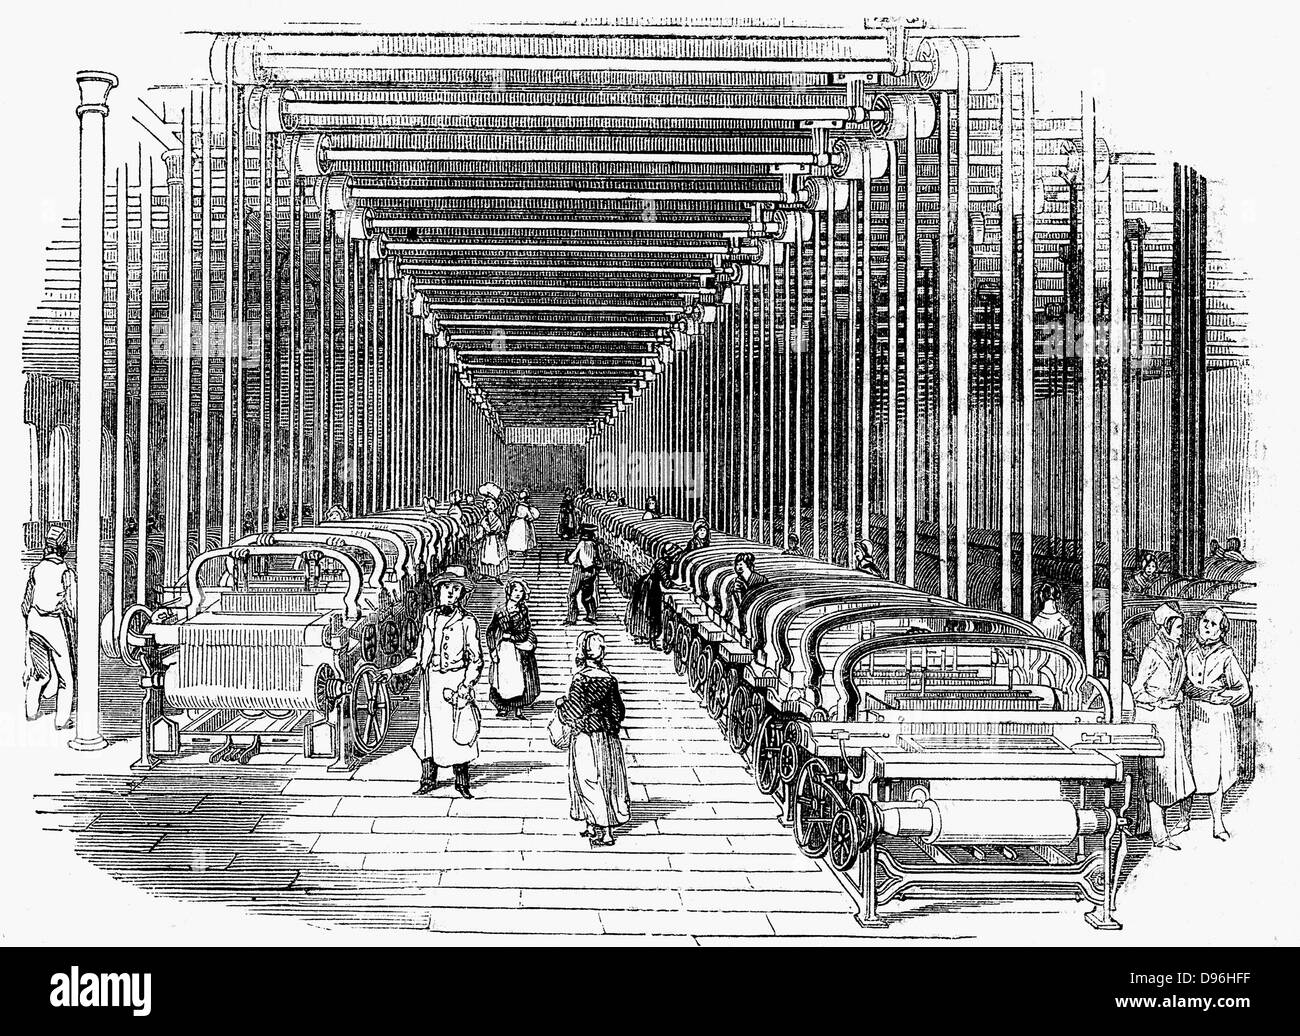 Weaving shed fitted rows with power looms driven by belt and shafting. Wood engraving c1840 - Stock Image